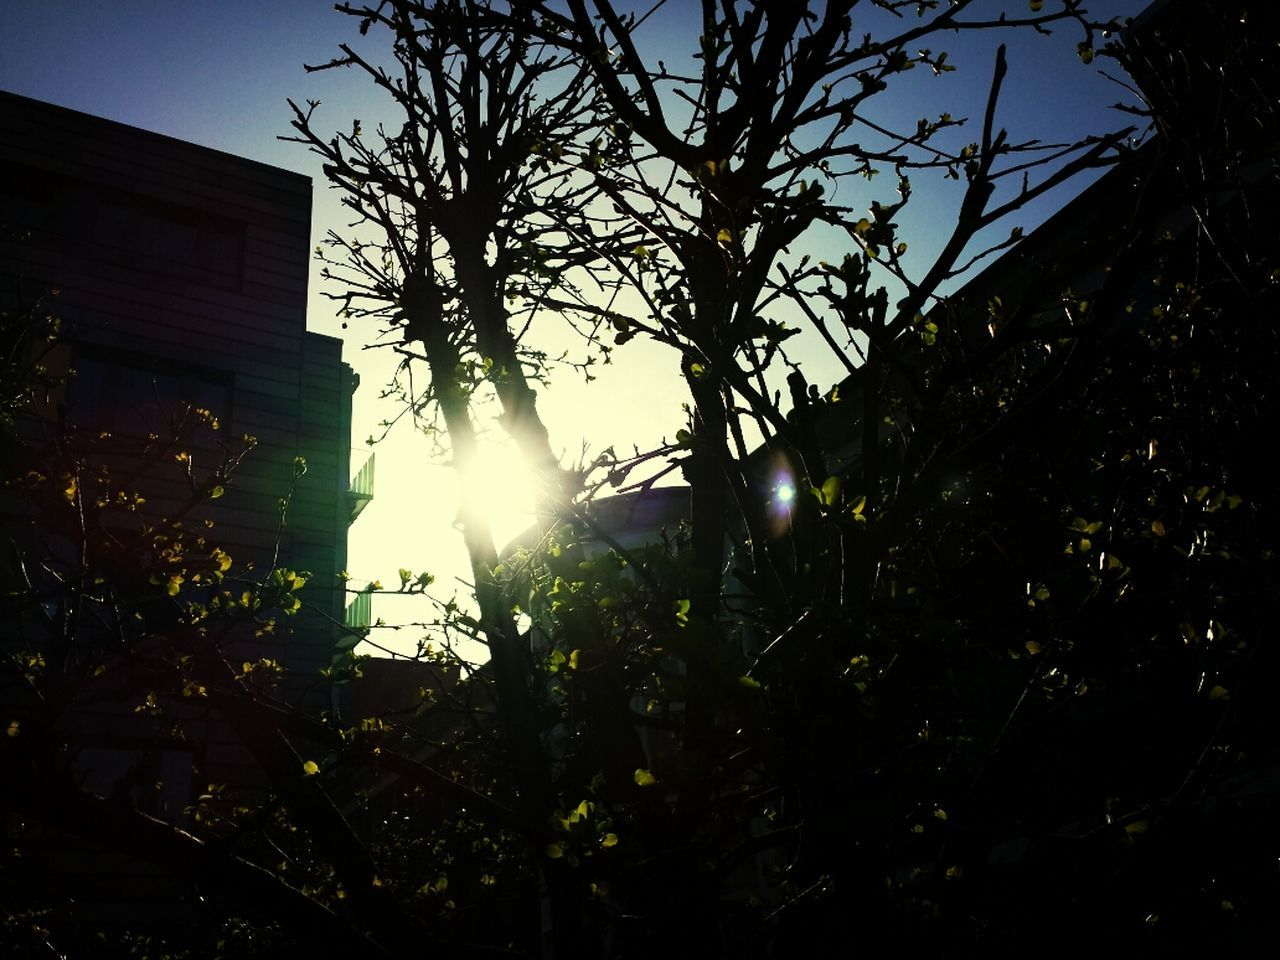 tree, sunlight, lens flare, low angle view, sun, outdoors, no people, nature, growth, silhouette, branch, building exterior, architecture, leaf, beauty in nature, sky, day